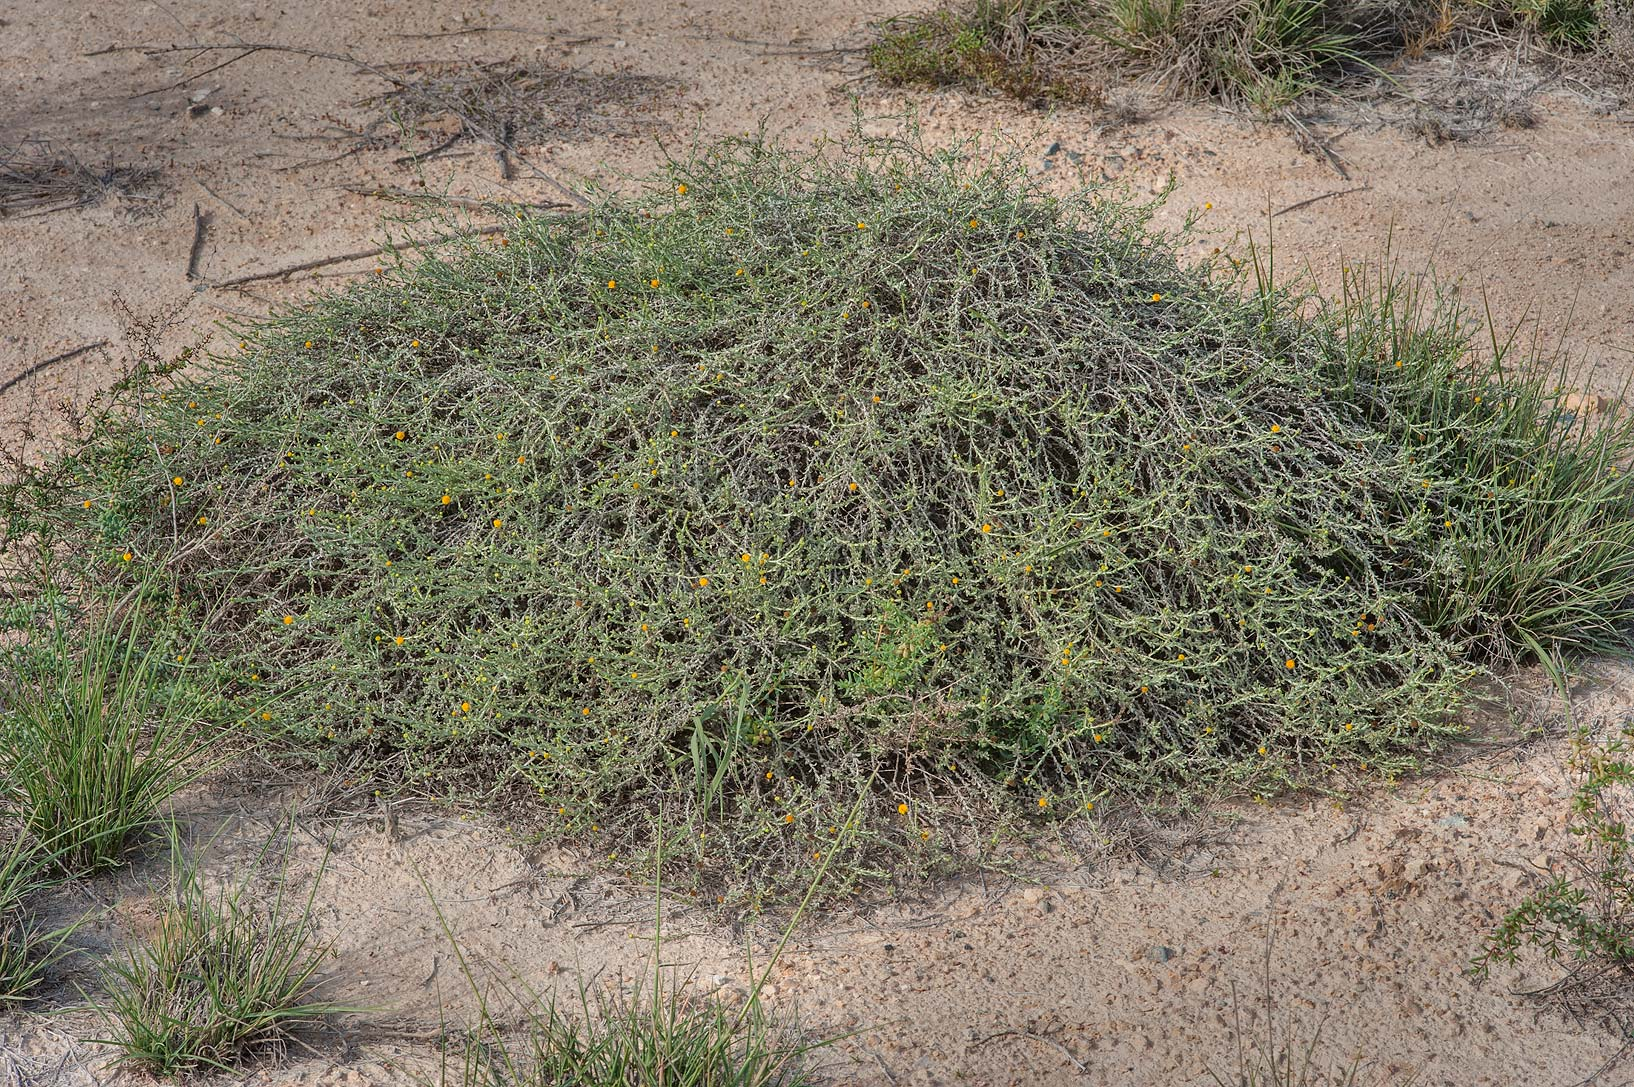 Plant of Pulicaria undulata with decumbent...water treatment plant. Al Khor, Qatar